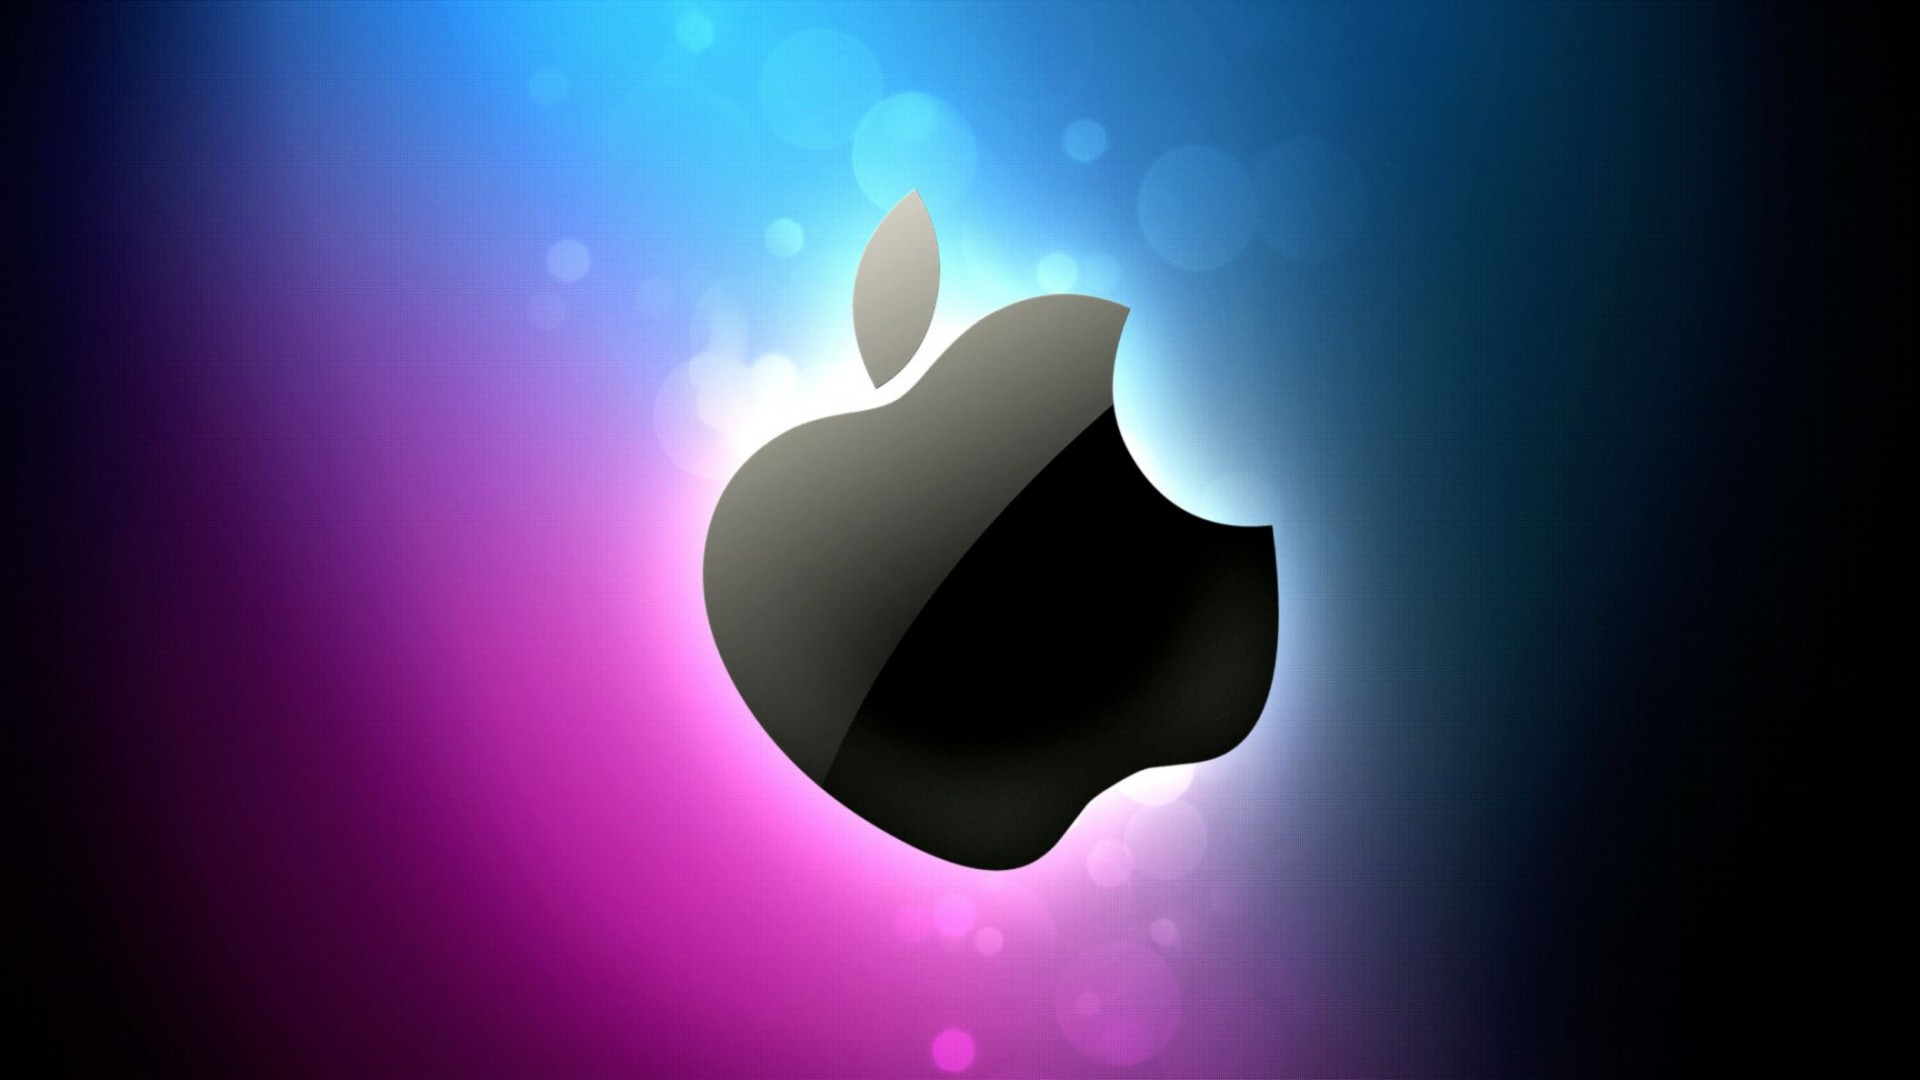 Colorful HD Apple HD Wallpaper